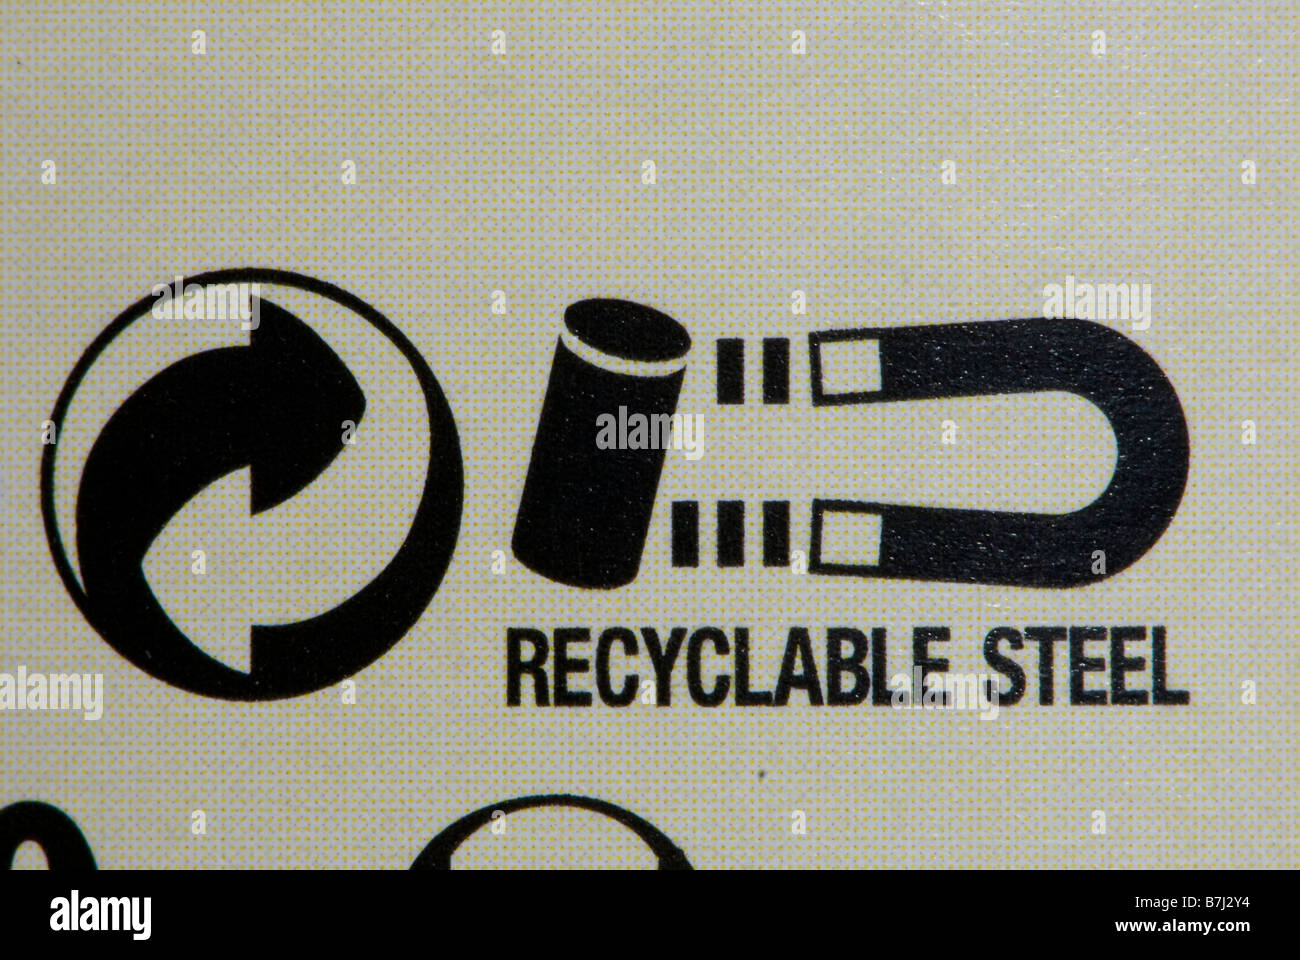 Metal recycling symbol on label - Stock Image